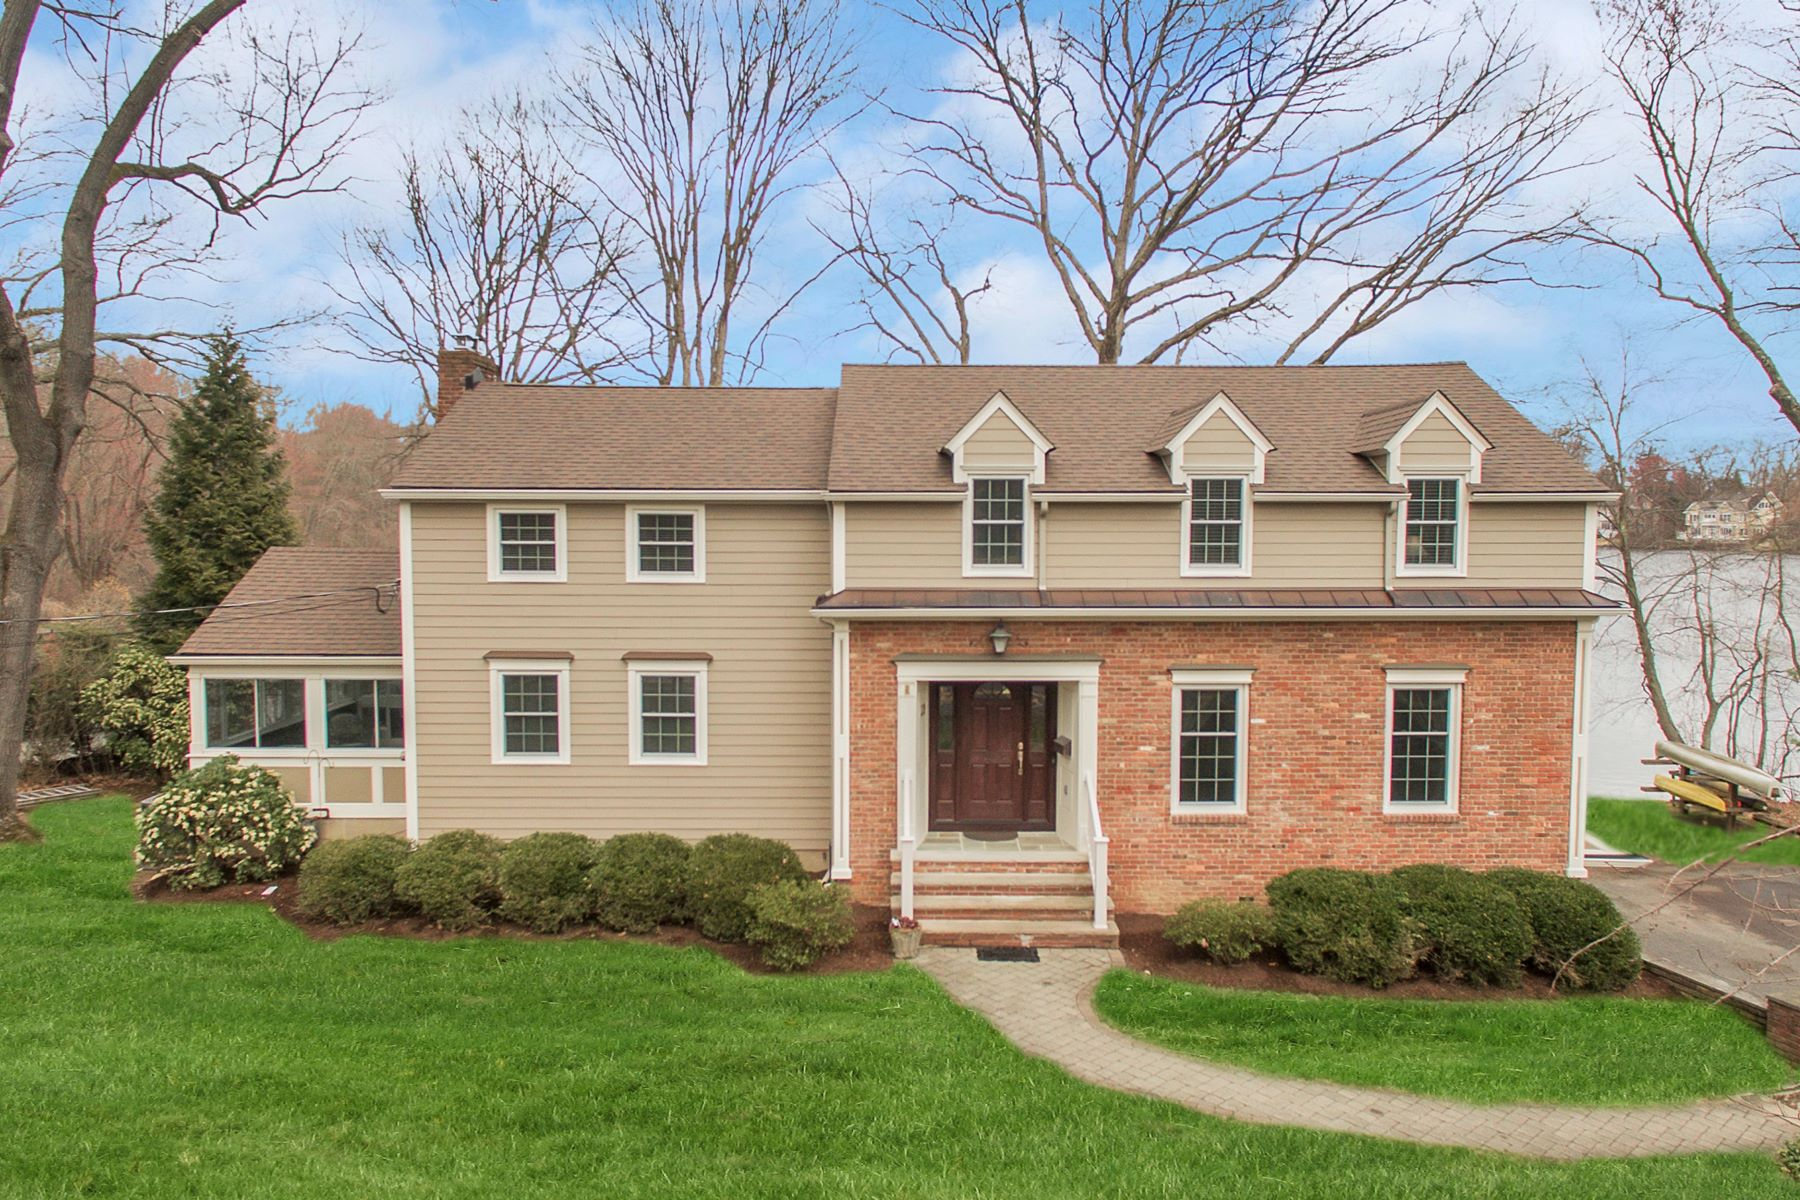 Single Family Homes for Sale at Meticulously Classic Colonial 39 N Pocono Road Mountain Lakes, New Jersey 07046 United States